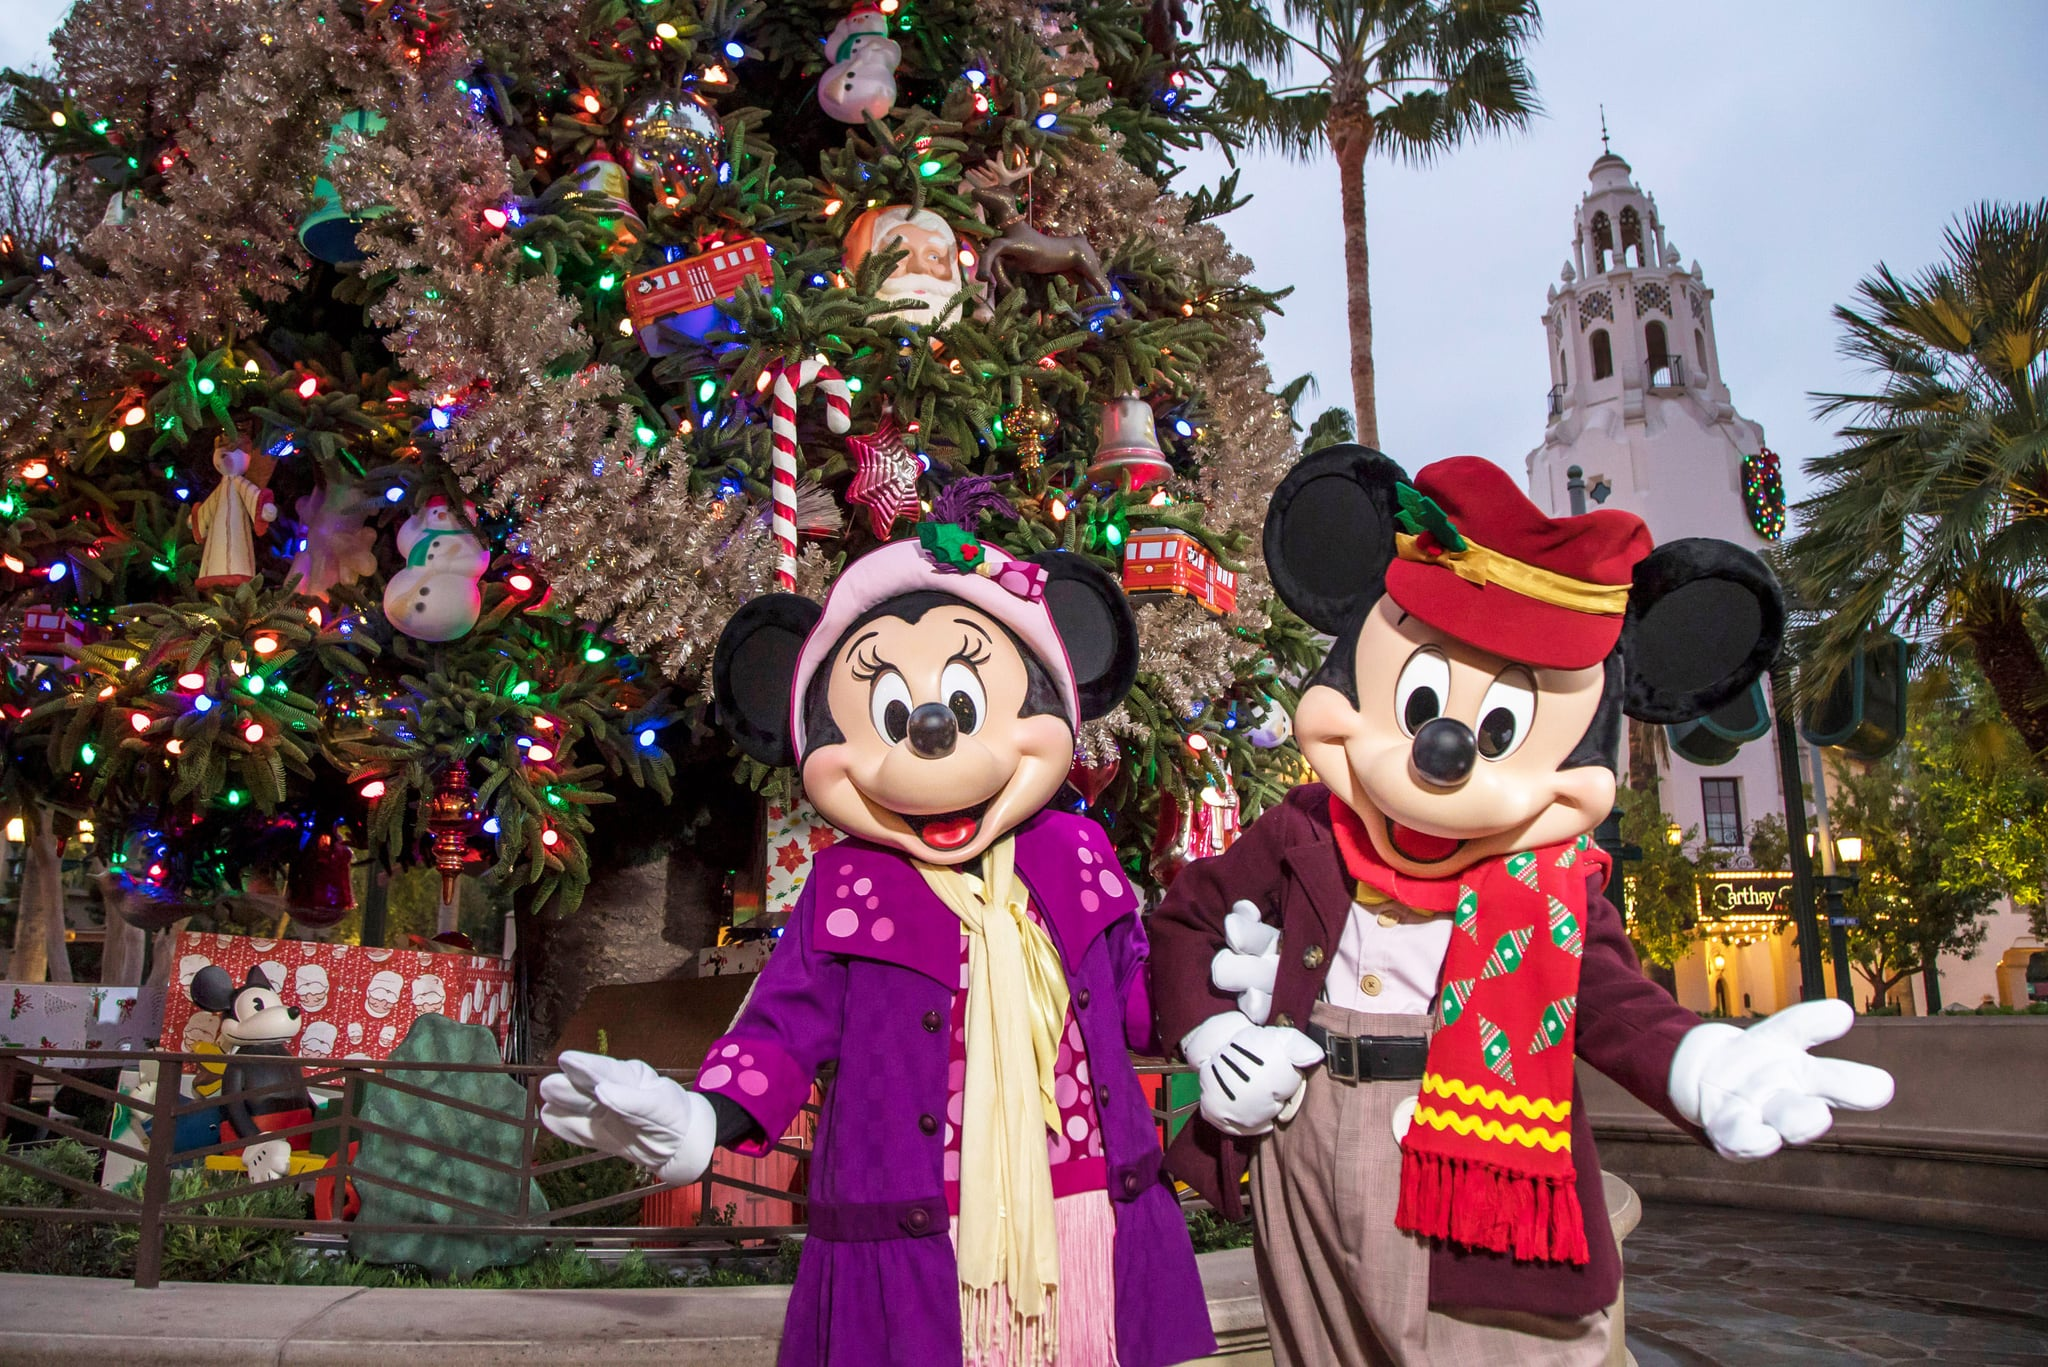 The Disneyland Resort transforms into the Merriest Place on Earth for the holiday season, Nov. 8, 2019, through Jan. 6, 2020. Guests plan their seasonal visits to Disneyland Resort year after year to experience beloved Holiday traditions and festive cheer, from snowfall on Main Street, U.S.A., to glistening décor, Disney-themed treats and merchandise, holiday entertainment and one-of-a-kind transformations that create it's a small world holiday and haunted mansion holiday